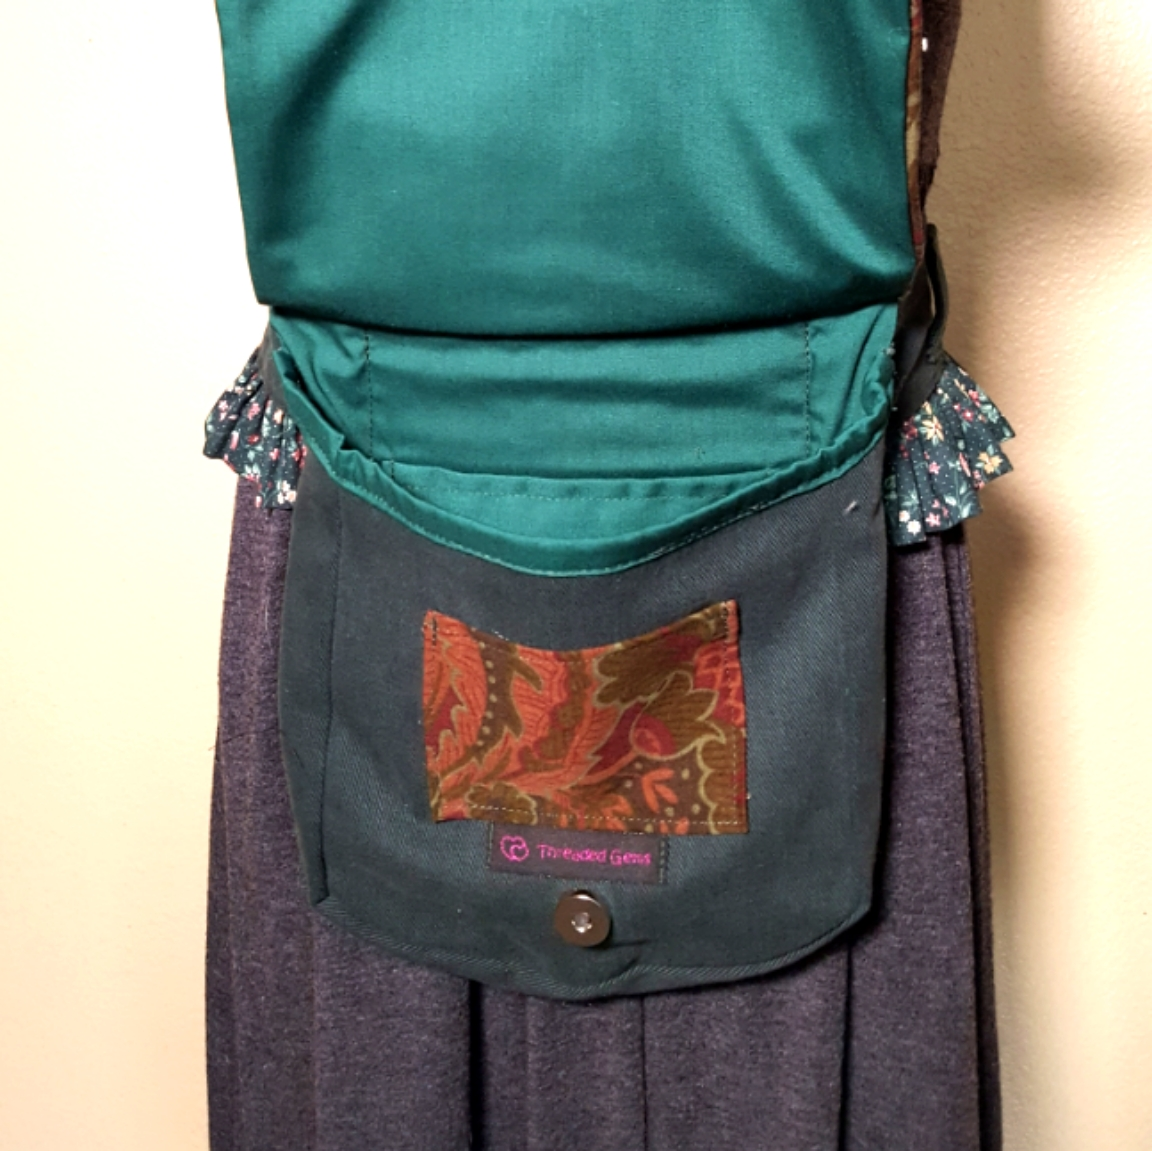 Ruffled hip bag maroon and green 1 open.